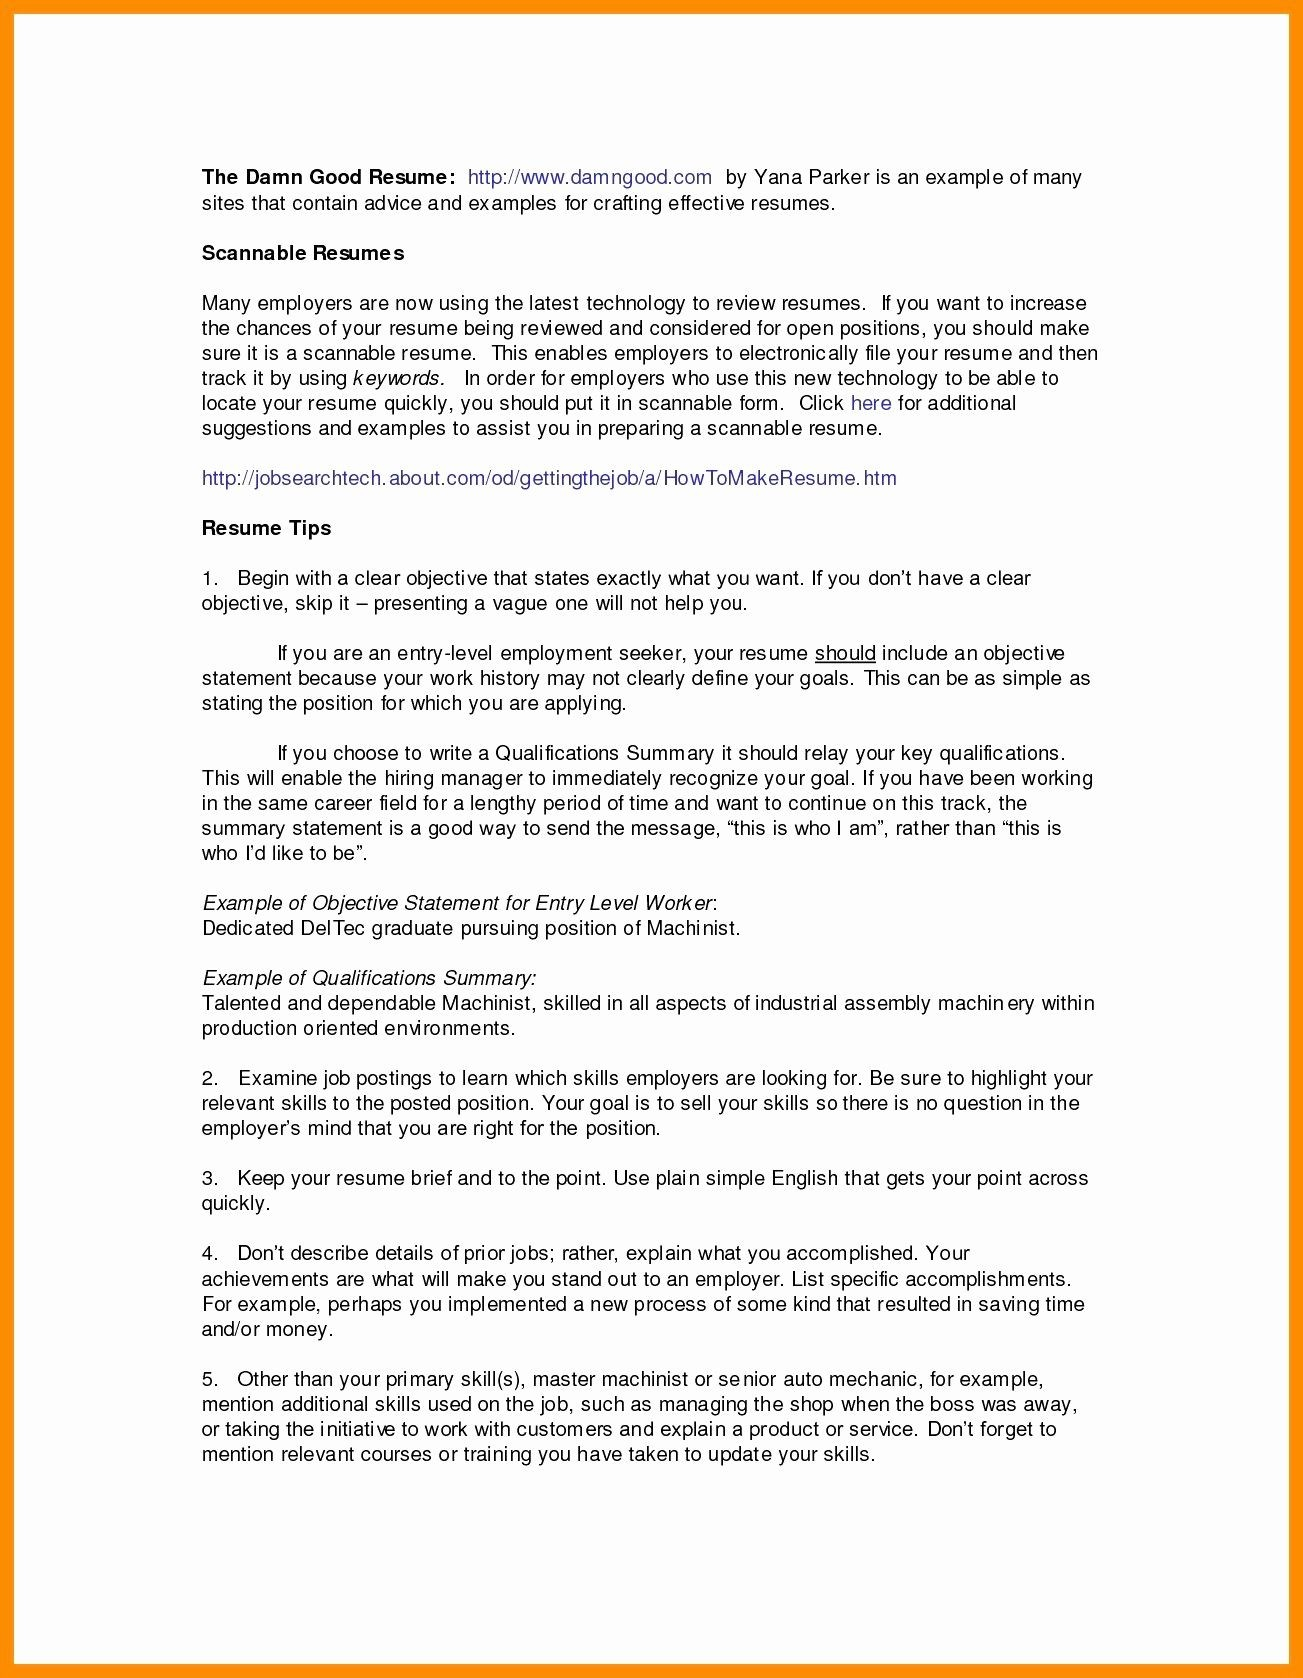 Medical School Resume - Sample Healthcare Resume Objectives Valid Examples Cover Letters for